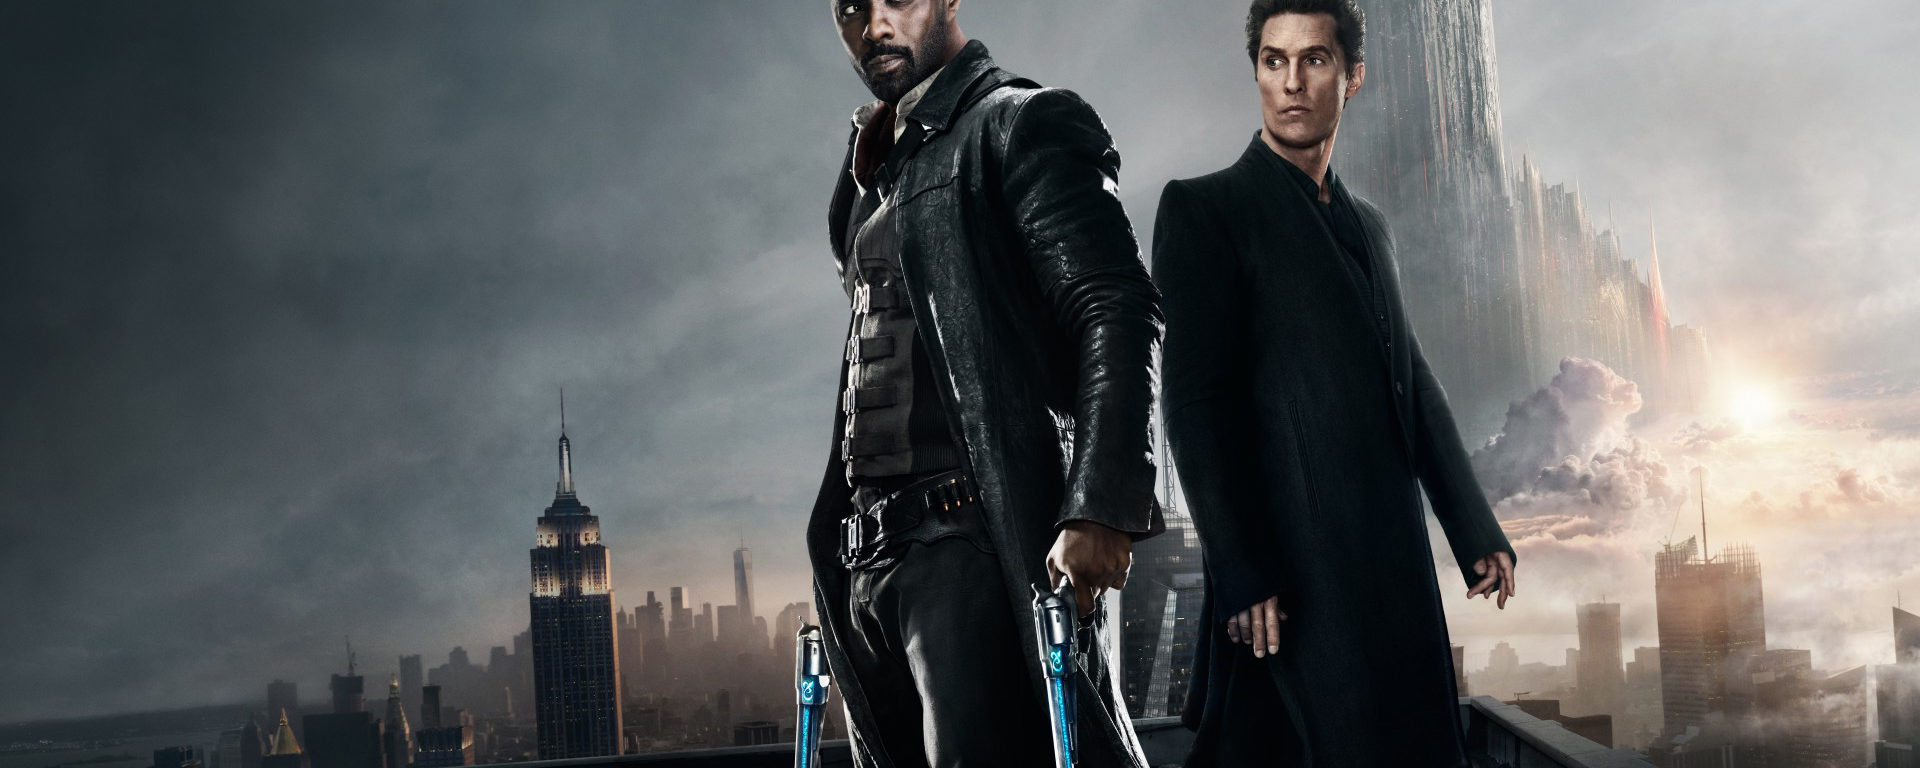 the-dark-tower-cultural-hater